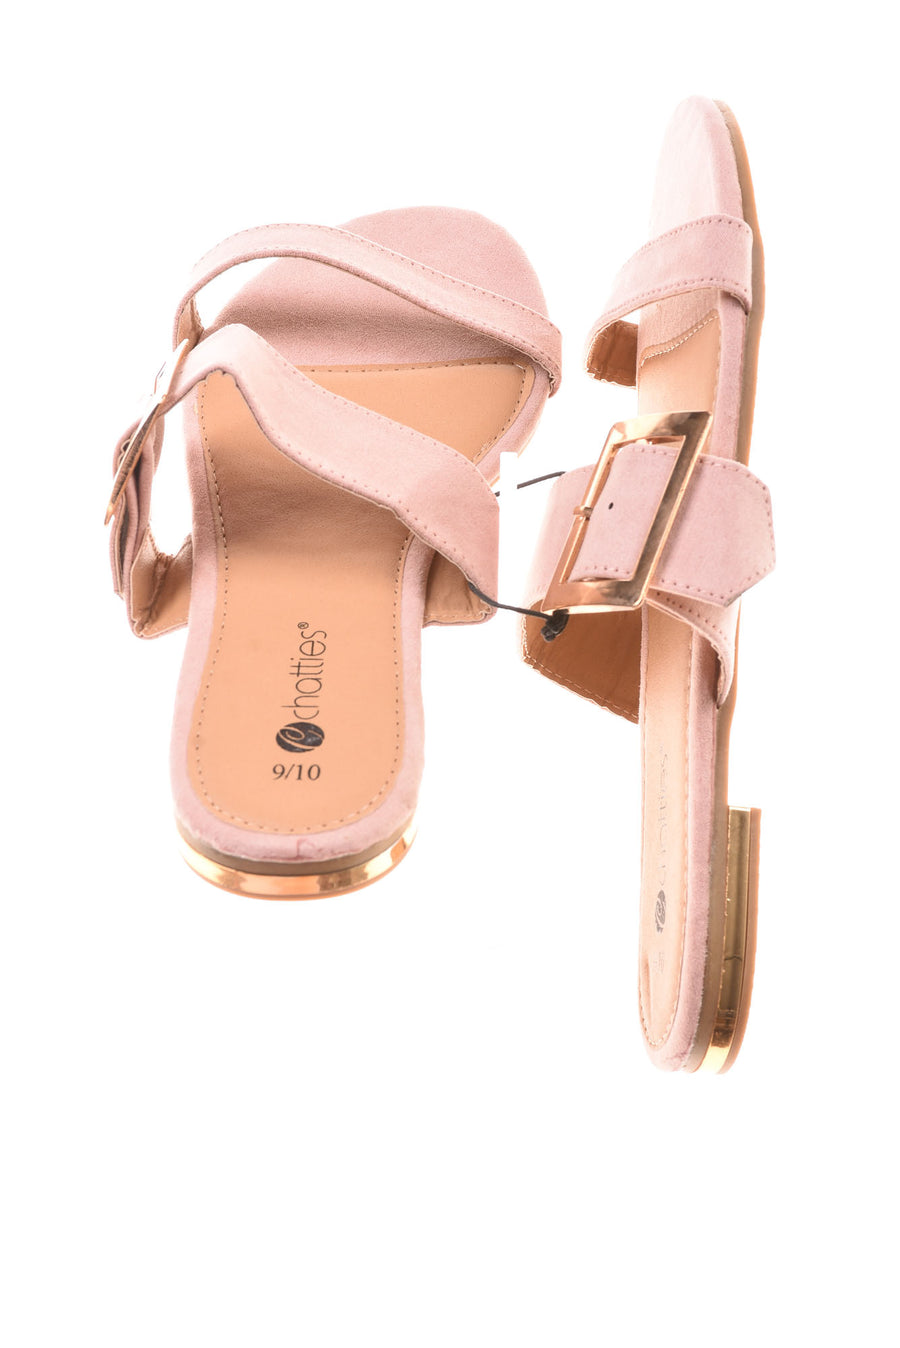 NEW Chatties Women's Shoes 9/10 Pink